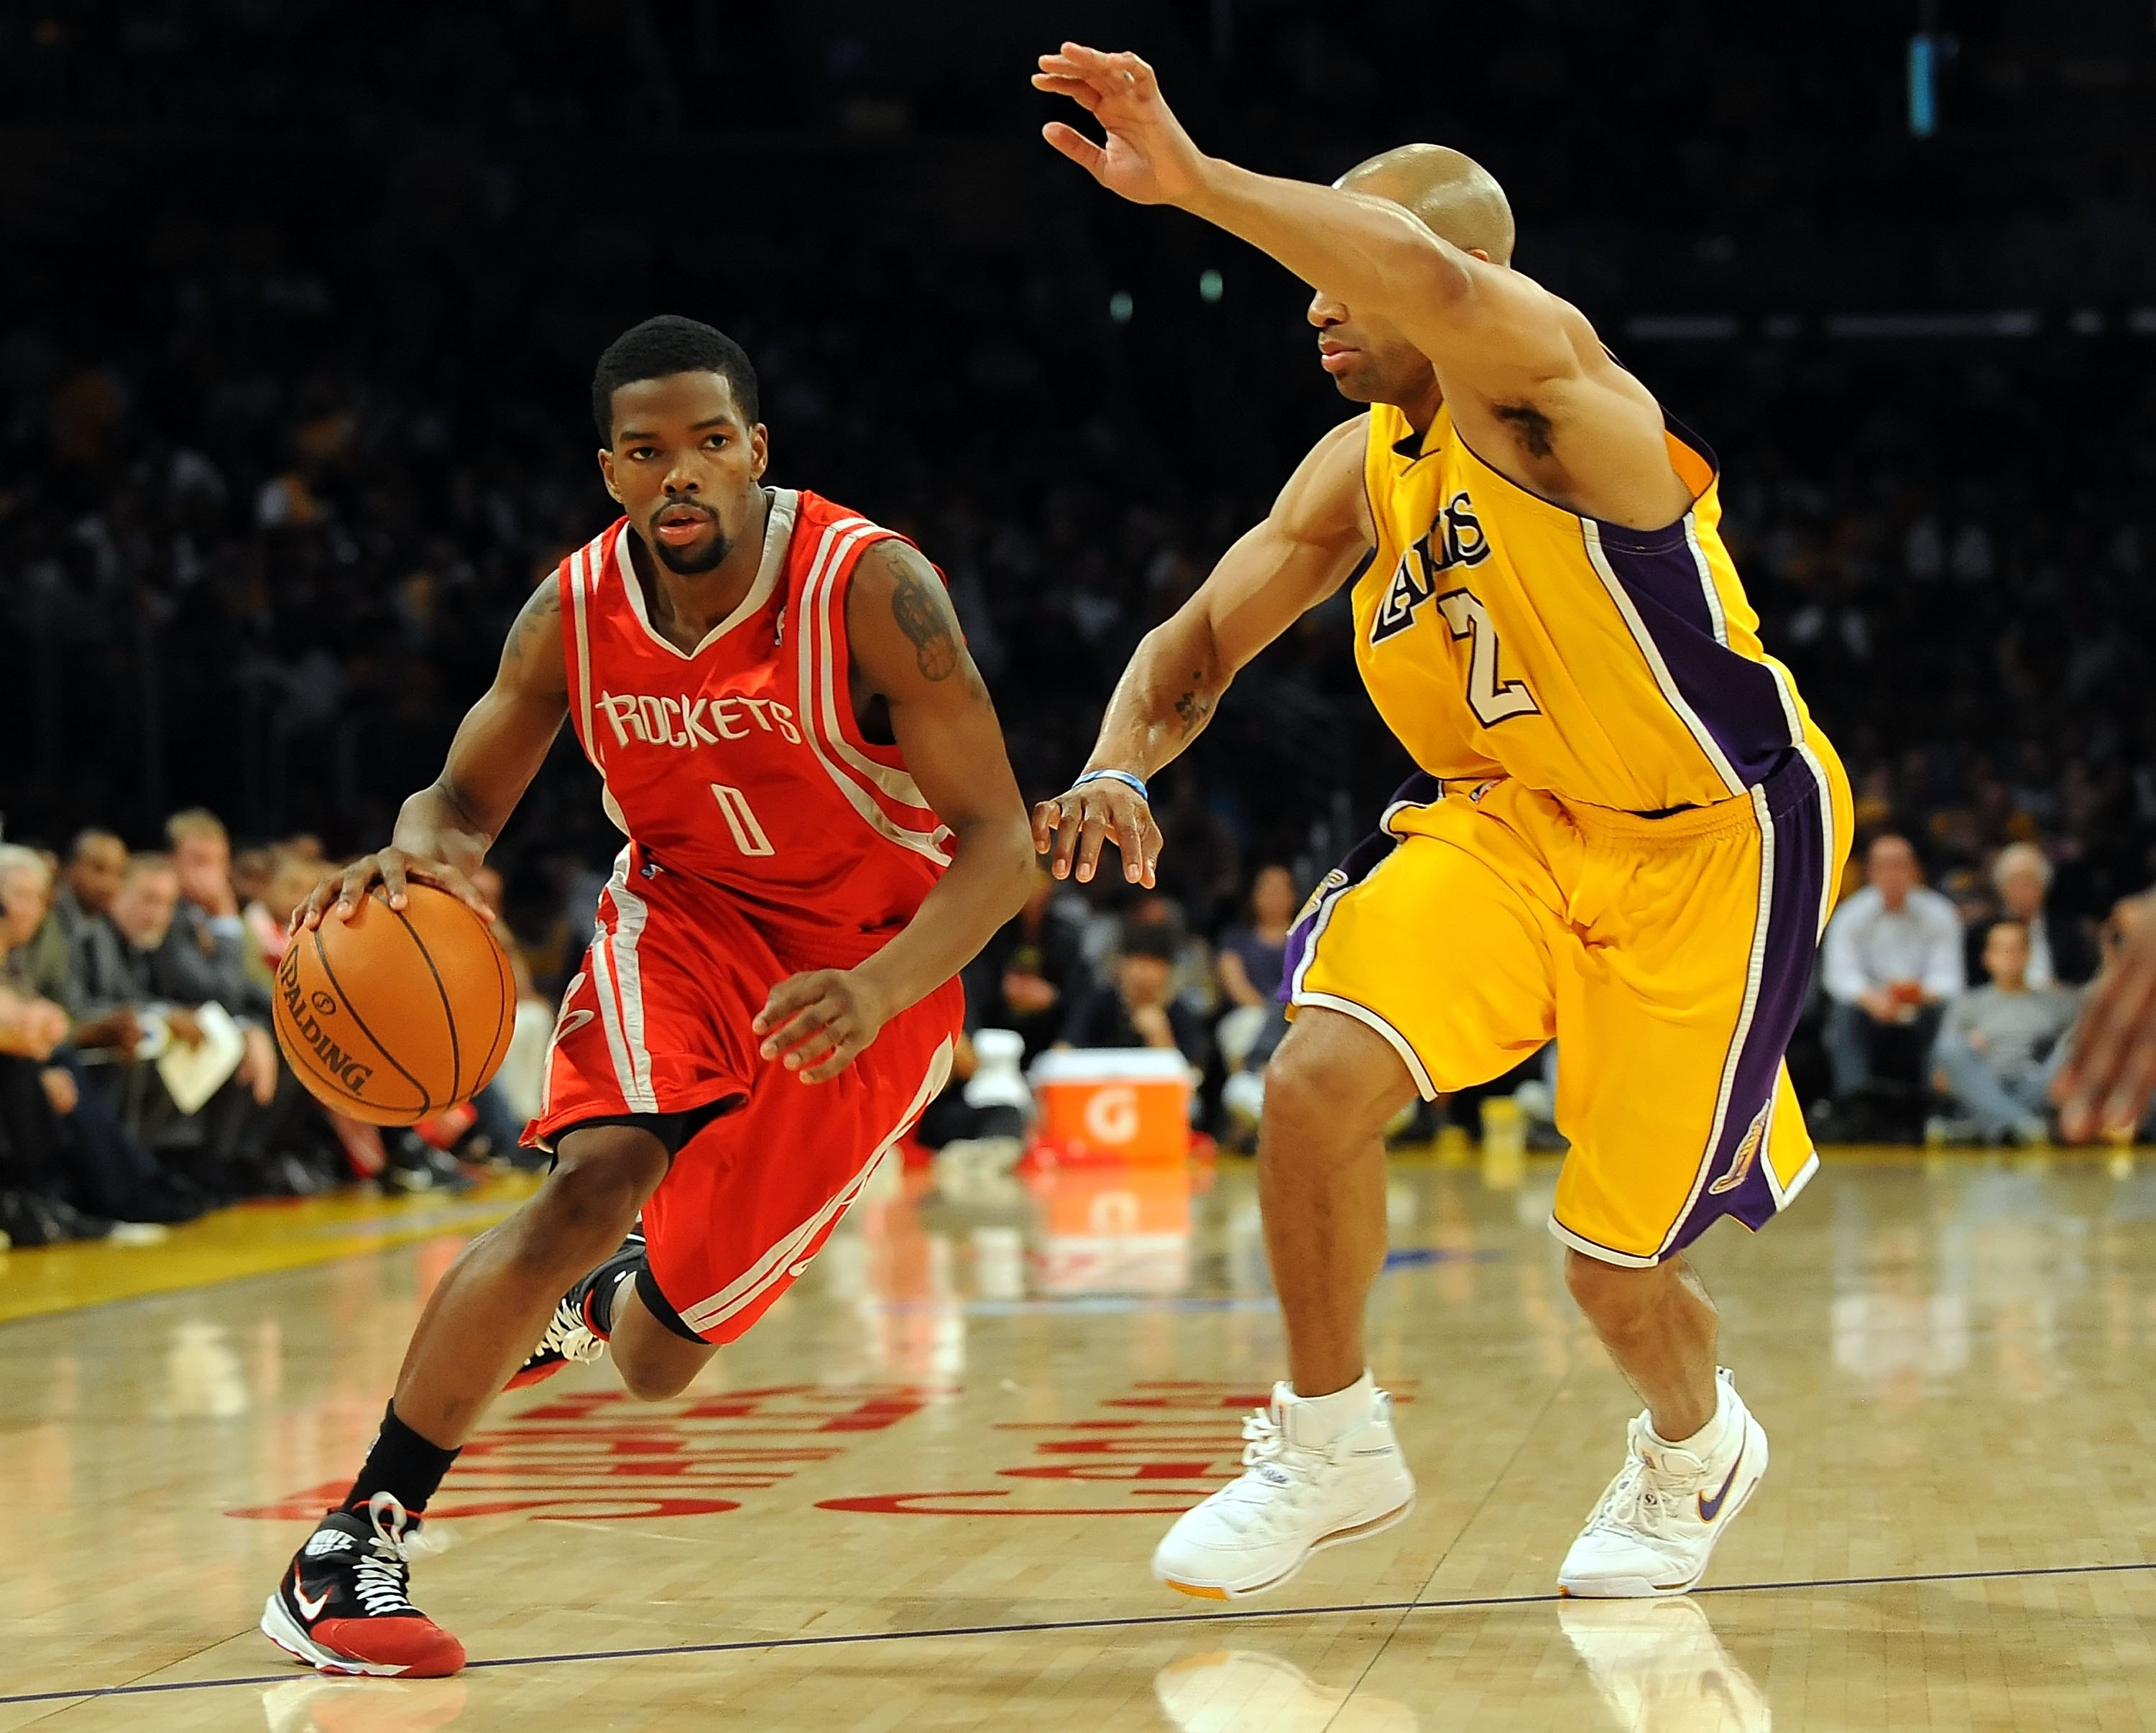 LOS ANGELES, CA - MAY 06:  Aaron Brooks #0 of the Houston Rockets moves the ball against Derek Fisher #2 of the Los Angeles Lakers in Game Two of the Western Conference Semifinals during the 2009 NBA Playoffs at Staples Center on May 6, 2009 in Los Angele